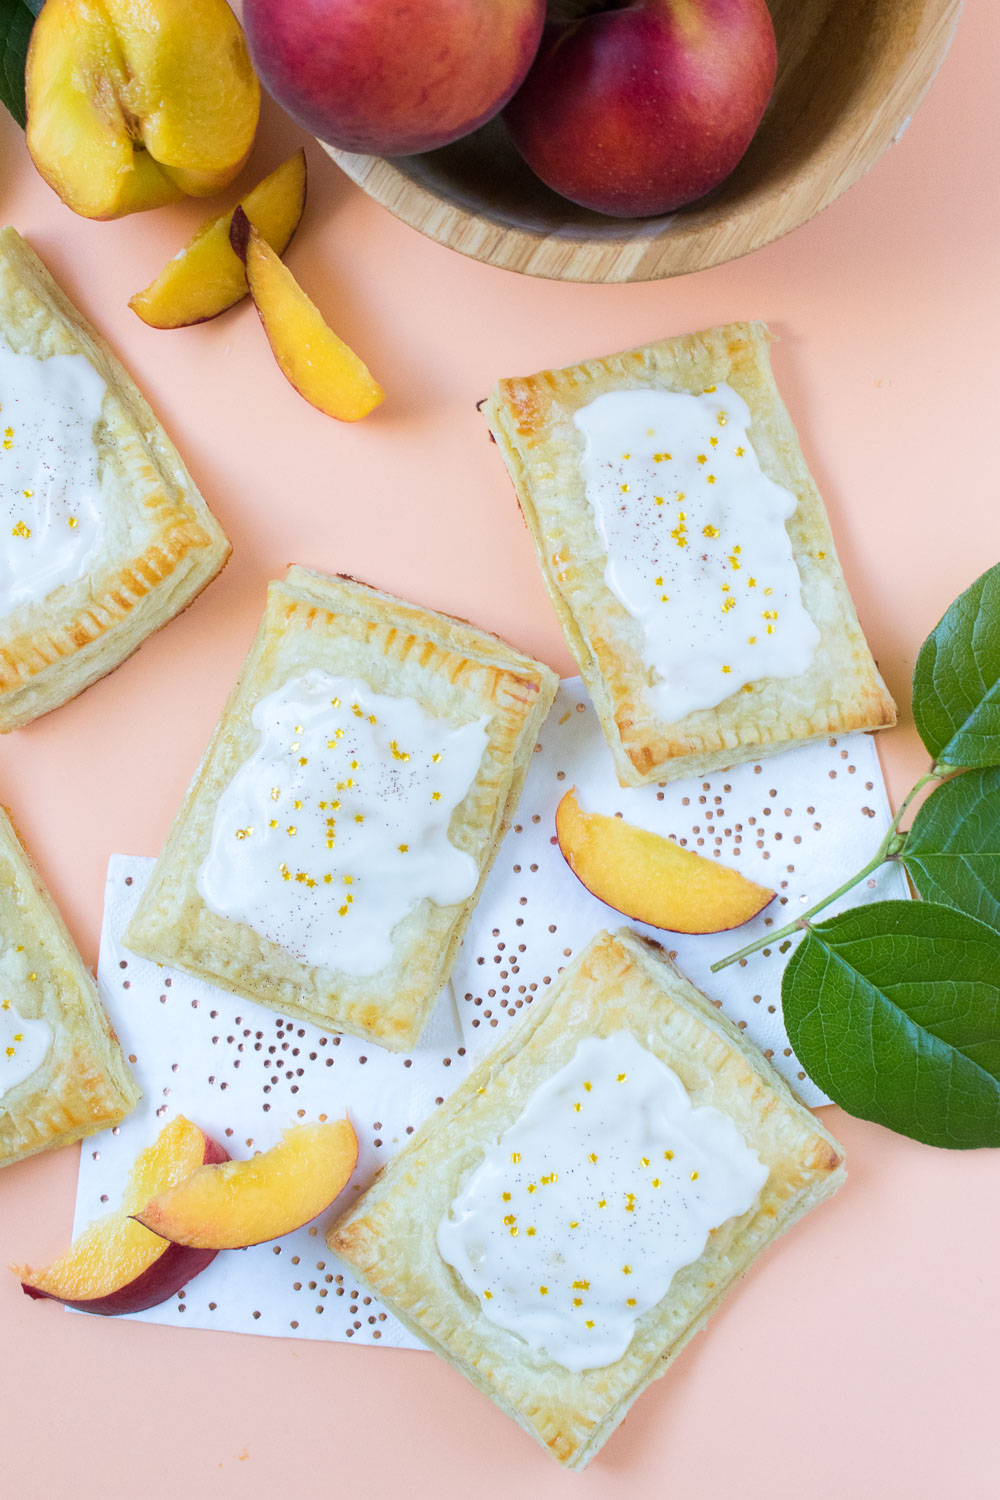 Peaches & Cream Pastries | Club Crafted